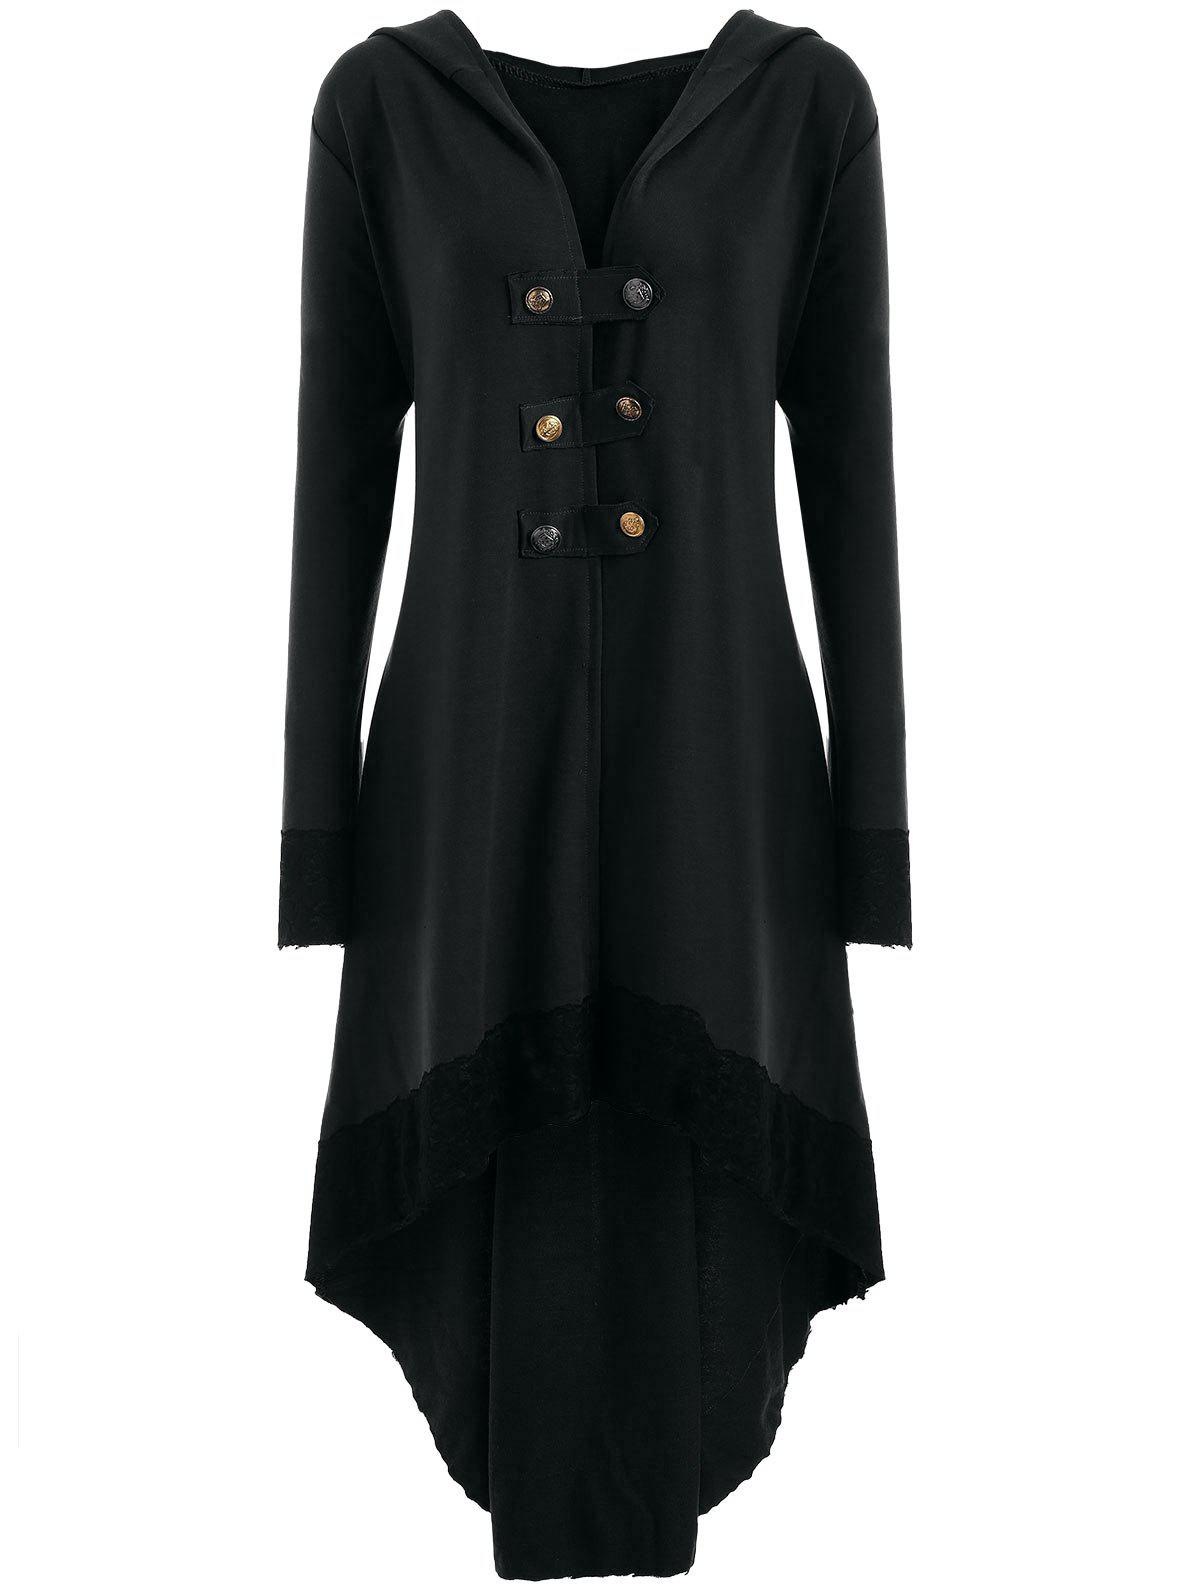 High Low Hooded Plus Size Lace-up CoatWOMEN<br><br>Size: 5XL; Color: BLACK; Clothes Type: Others; Material: Polyester,Spandex; Type: Asymmetric Length; Shirt Length: Long; Sleeve Length: Full; Collar: Hooded; Pattern Type: Solid; Style: Fashion; Season: Fall,Spring; Weight: 0.6200kg; Package Contents: 1 x Coat;